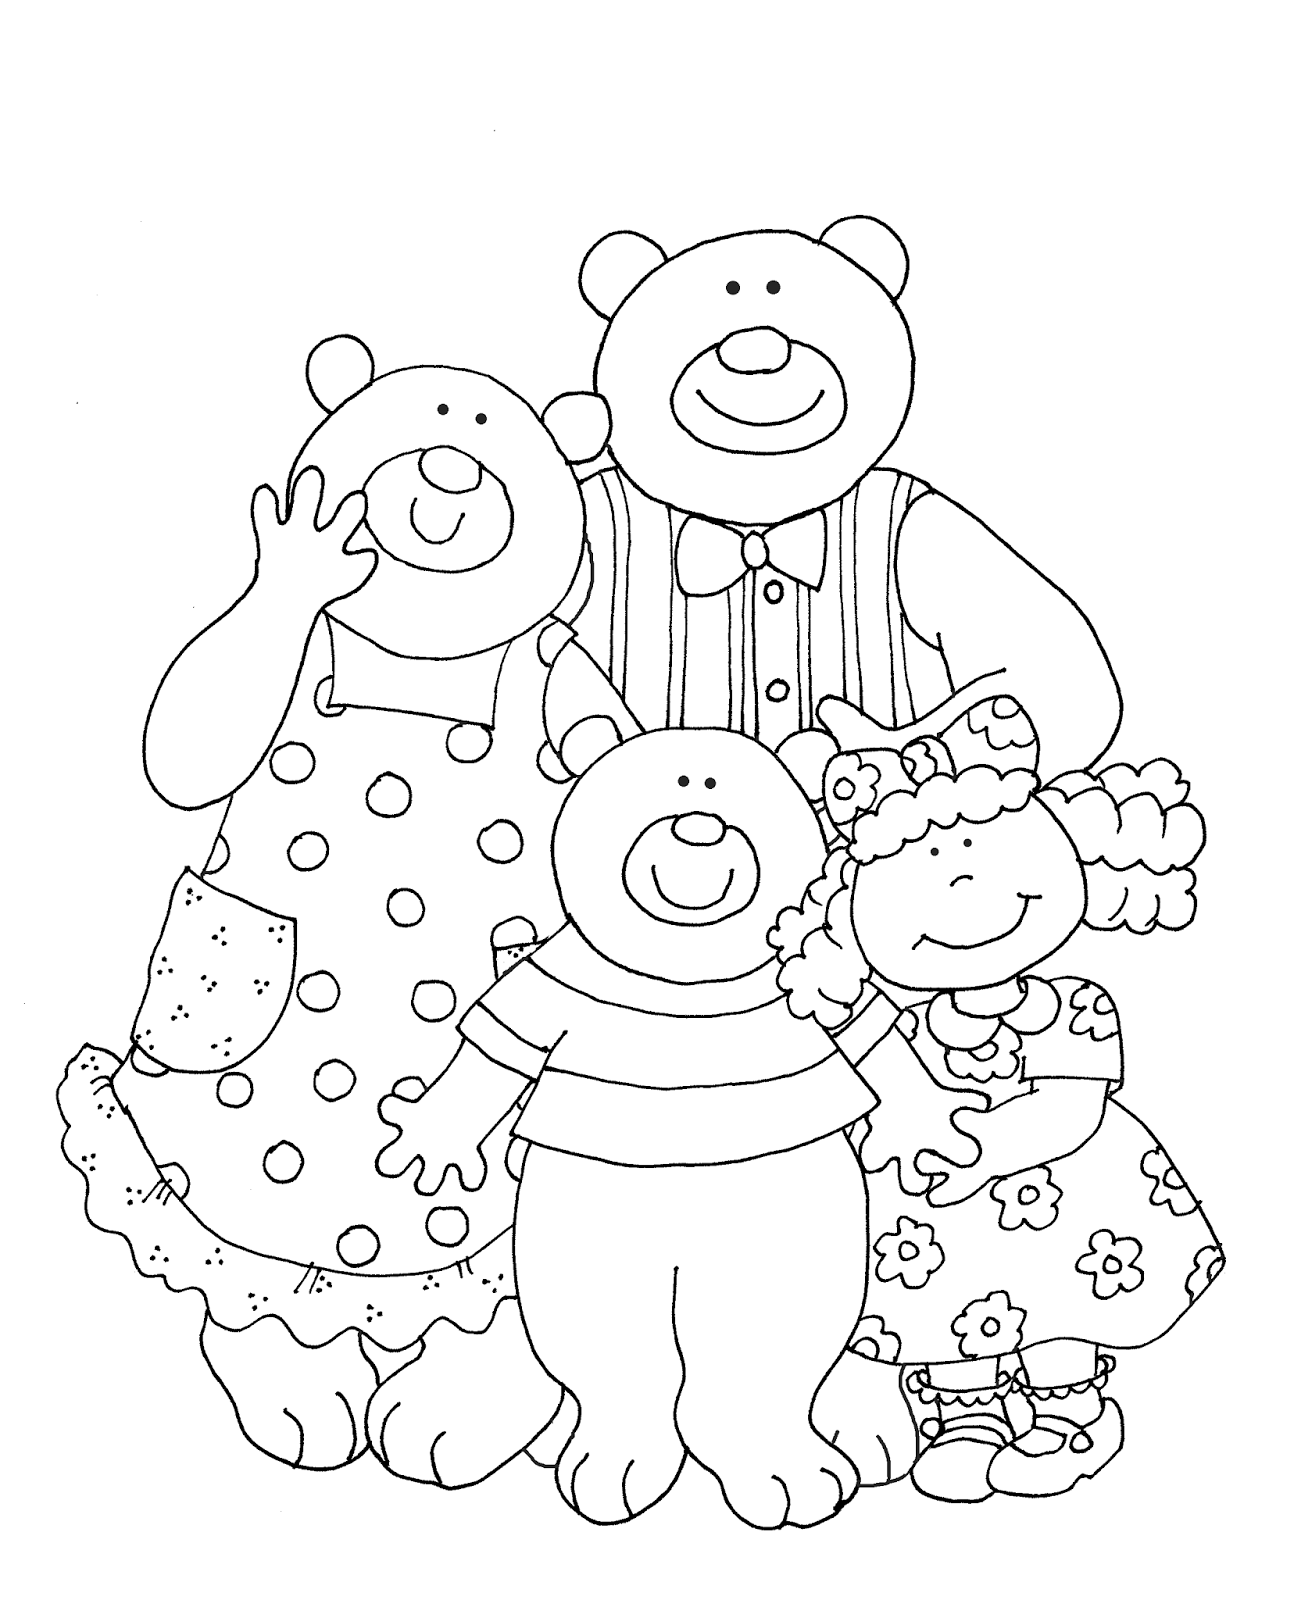 It is a graphic of Goldilocks and the Three Bears Story Printable intended for short story